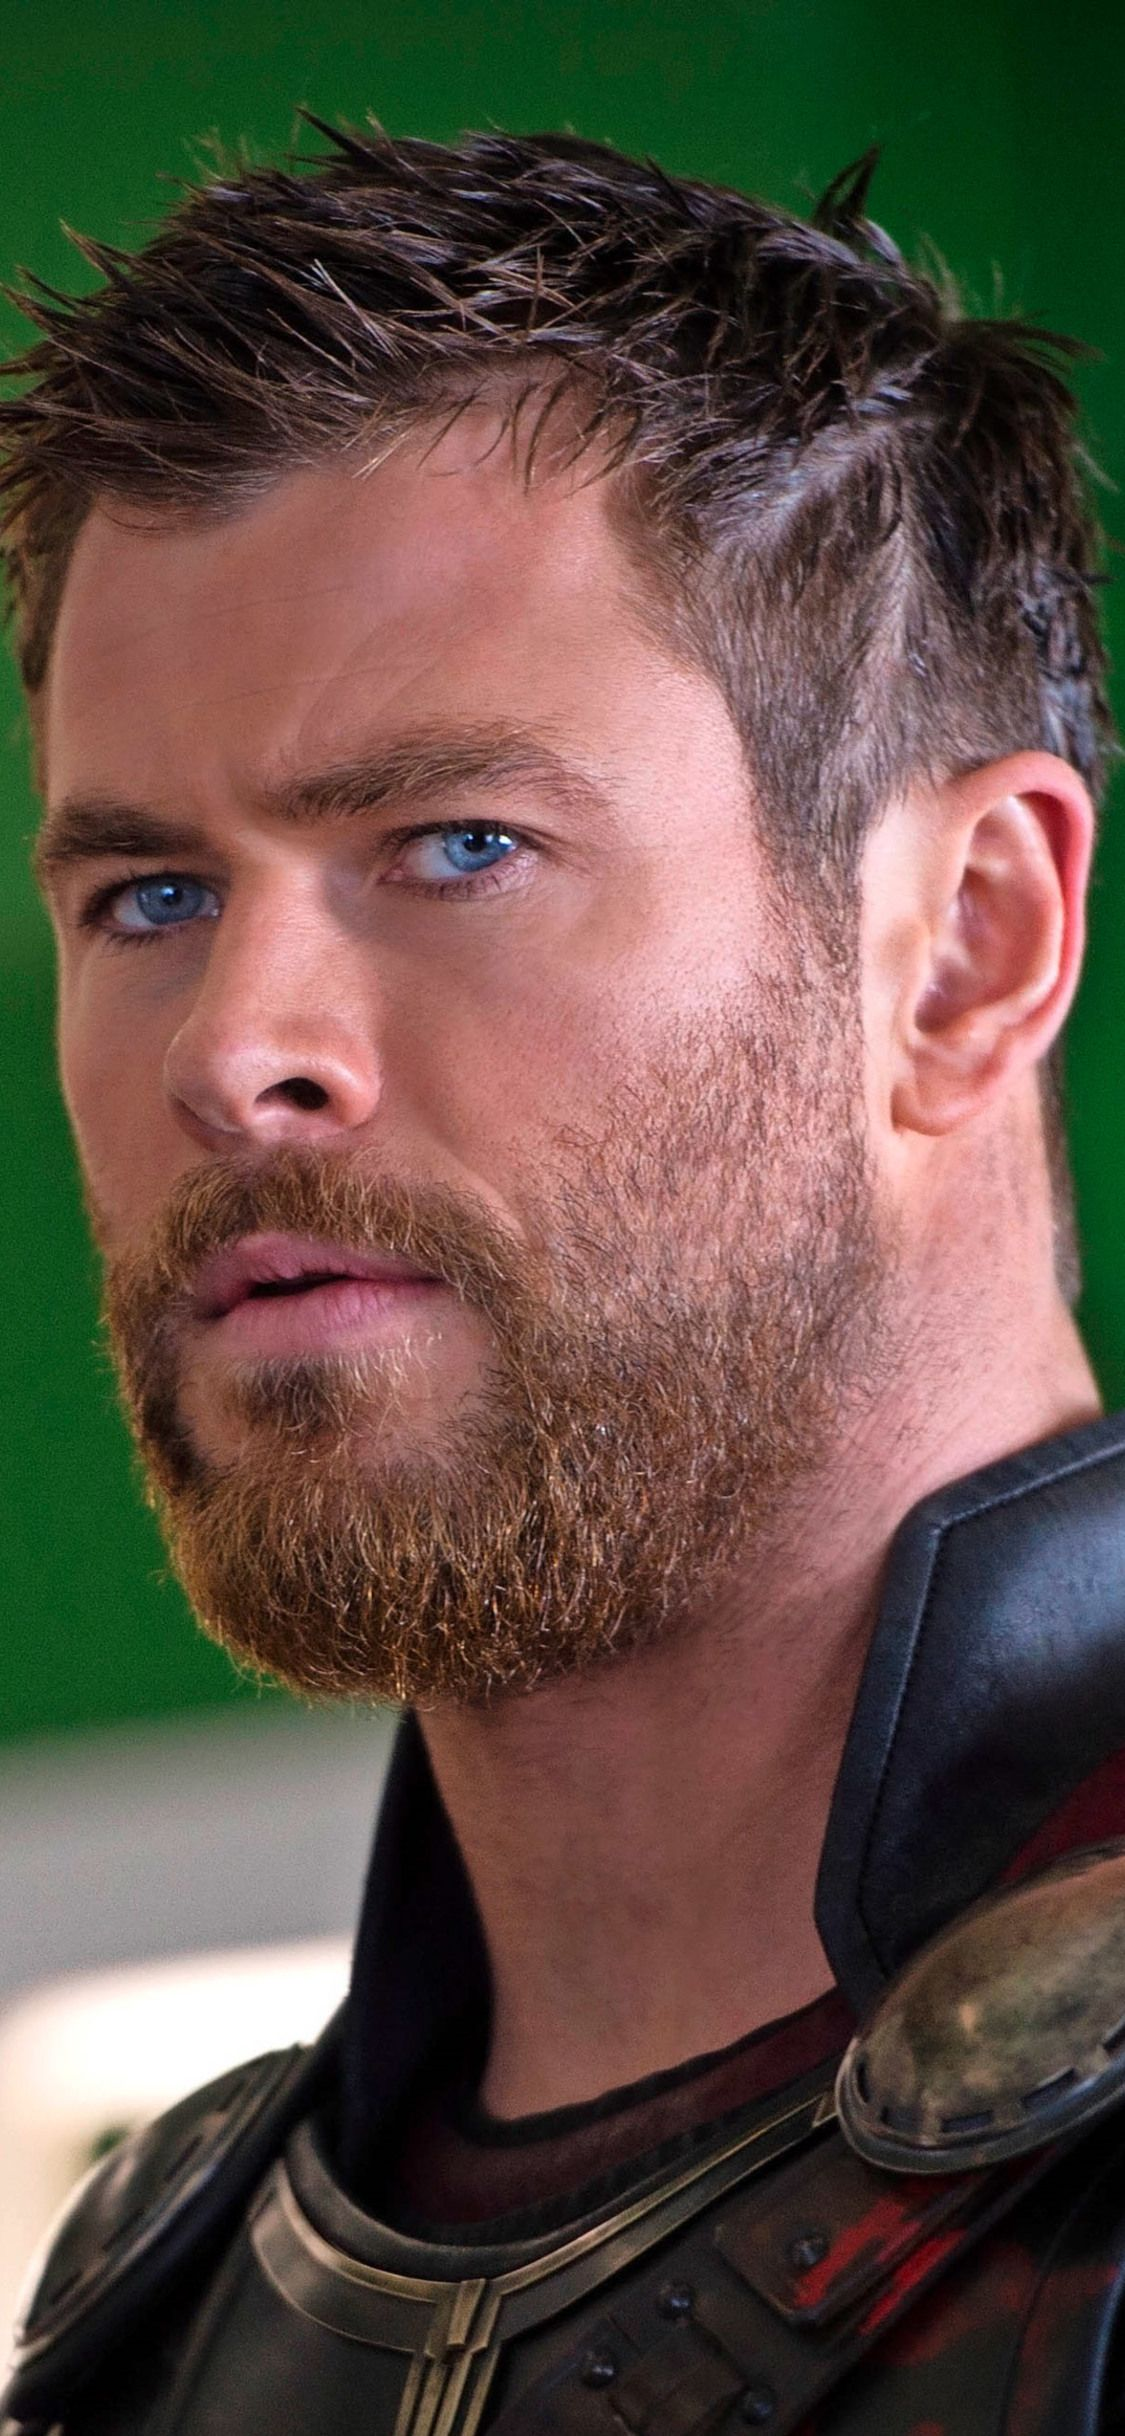 1125x2436 Chris Hemsworth New Look In Thor Ragnarok Iphone Xs Iphone 10 Iphone X Hd 4k Wallpapers Images Back Chris Hemsworth Beard Chris Hemsworth Hemsworth